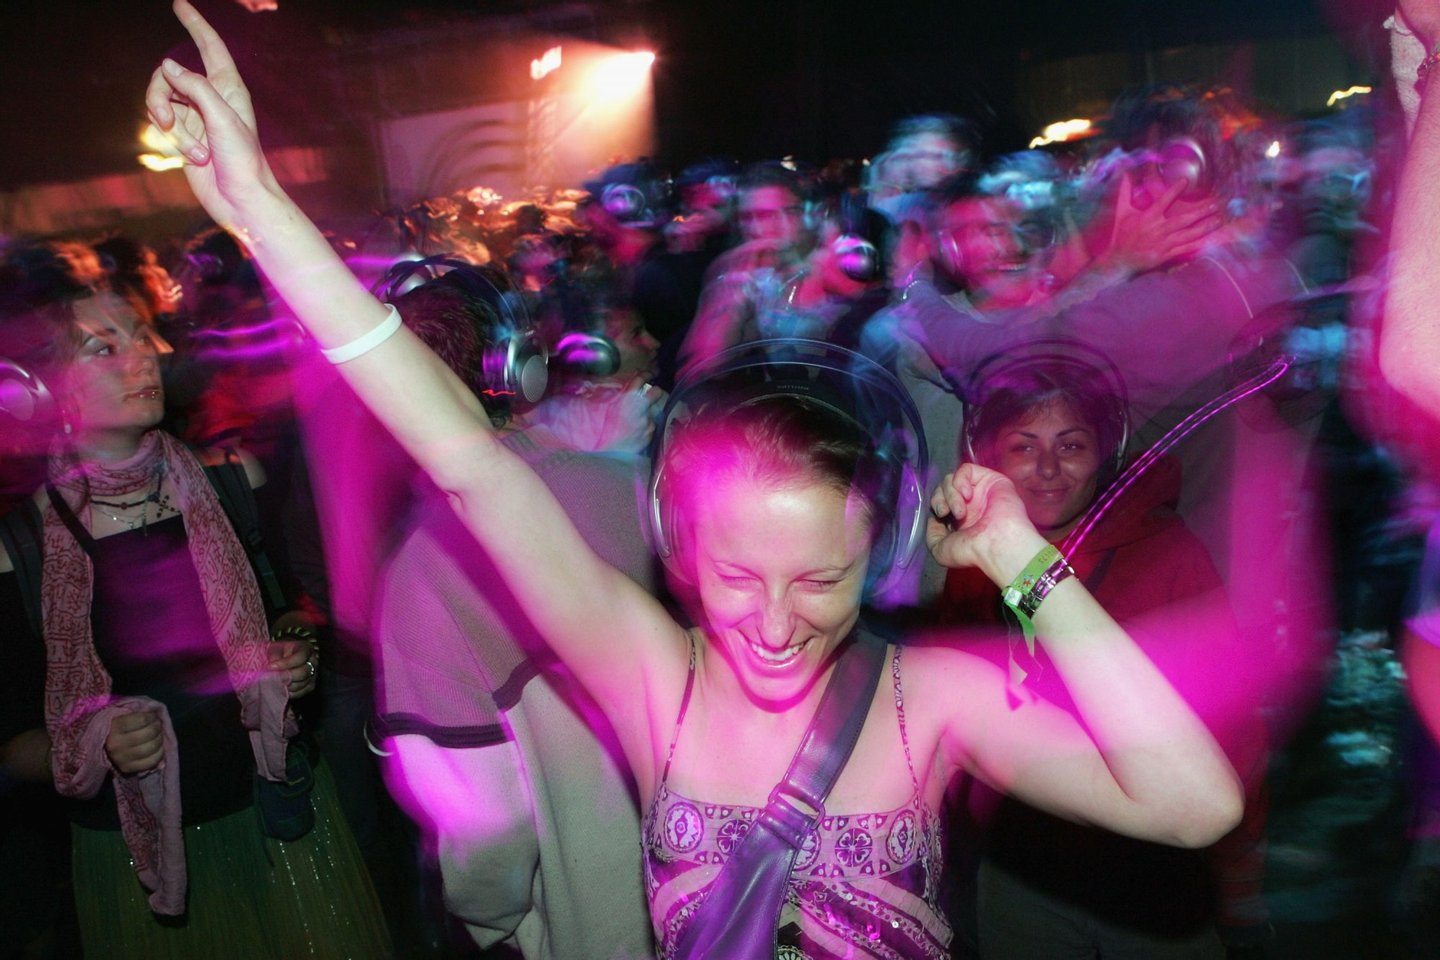 GLASTONBURY, ENGLAND - JUNE 25: A reveller enjoys the silent all-night disco in the Dance Tent on the second day of the Glastonbury Music Festival 2005 at Worthy Farm, Pilton on June 25, 2005 in Somerset, England. The headphones cost ?75, have two channels and over a 1000 were given out. The festival runs until June 26. (Photo by Matt Cardy/Getty Images) *** Local Caption ***